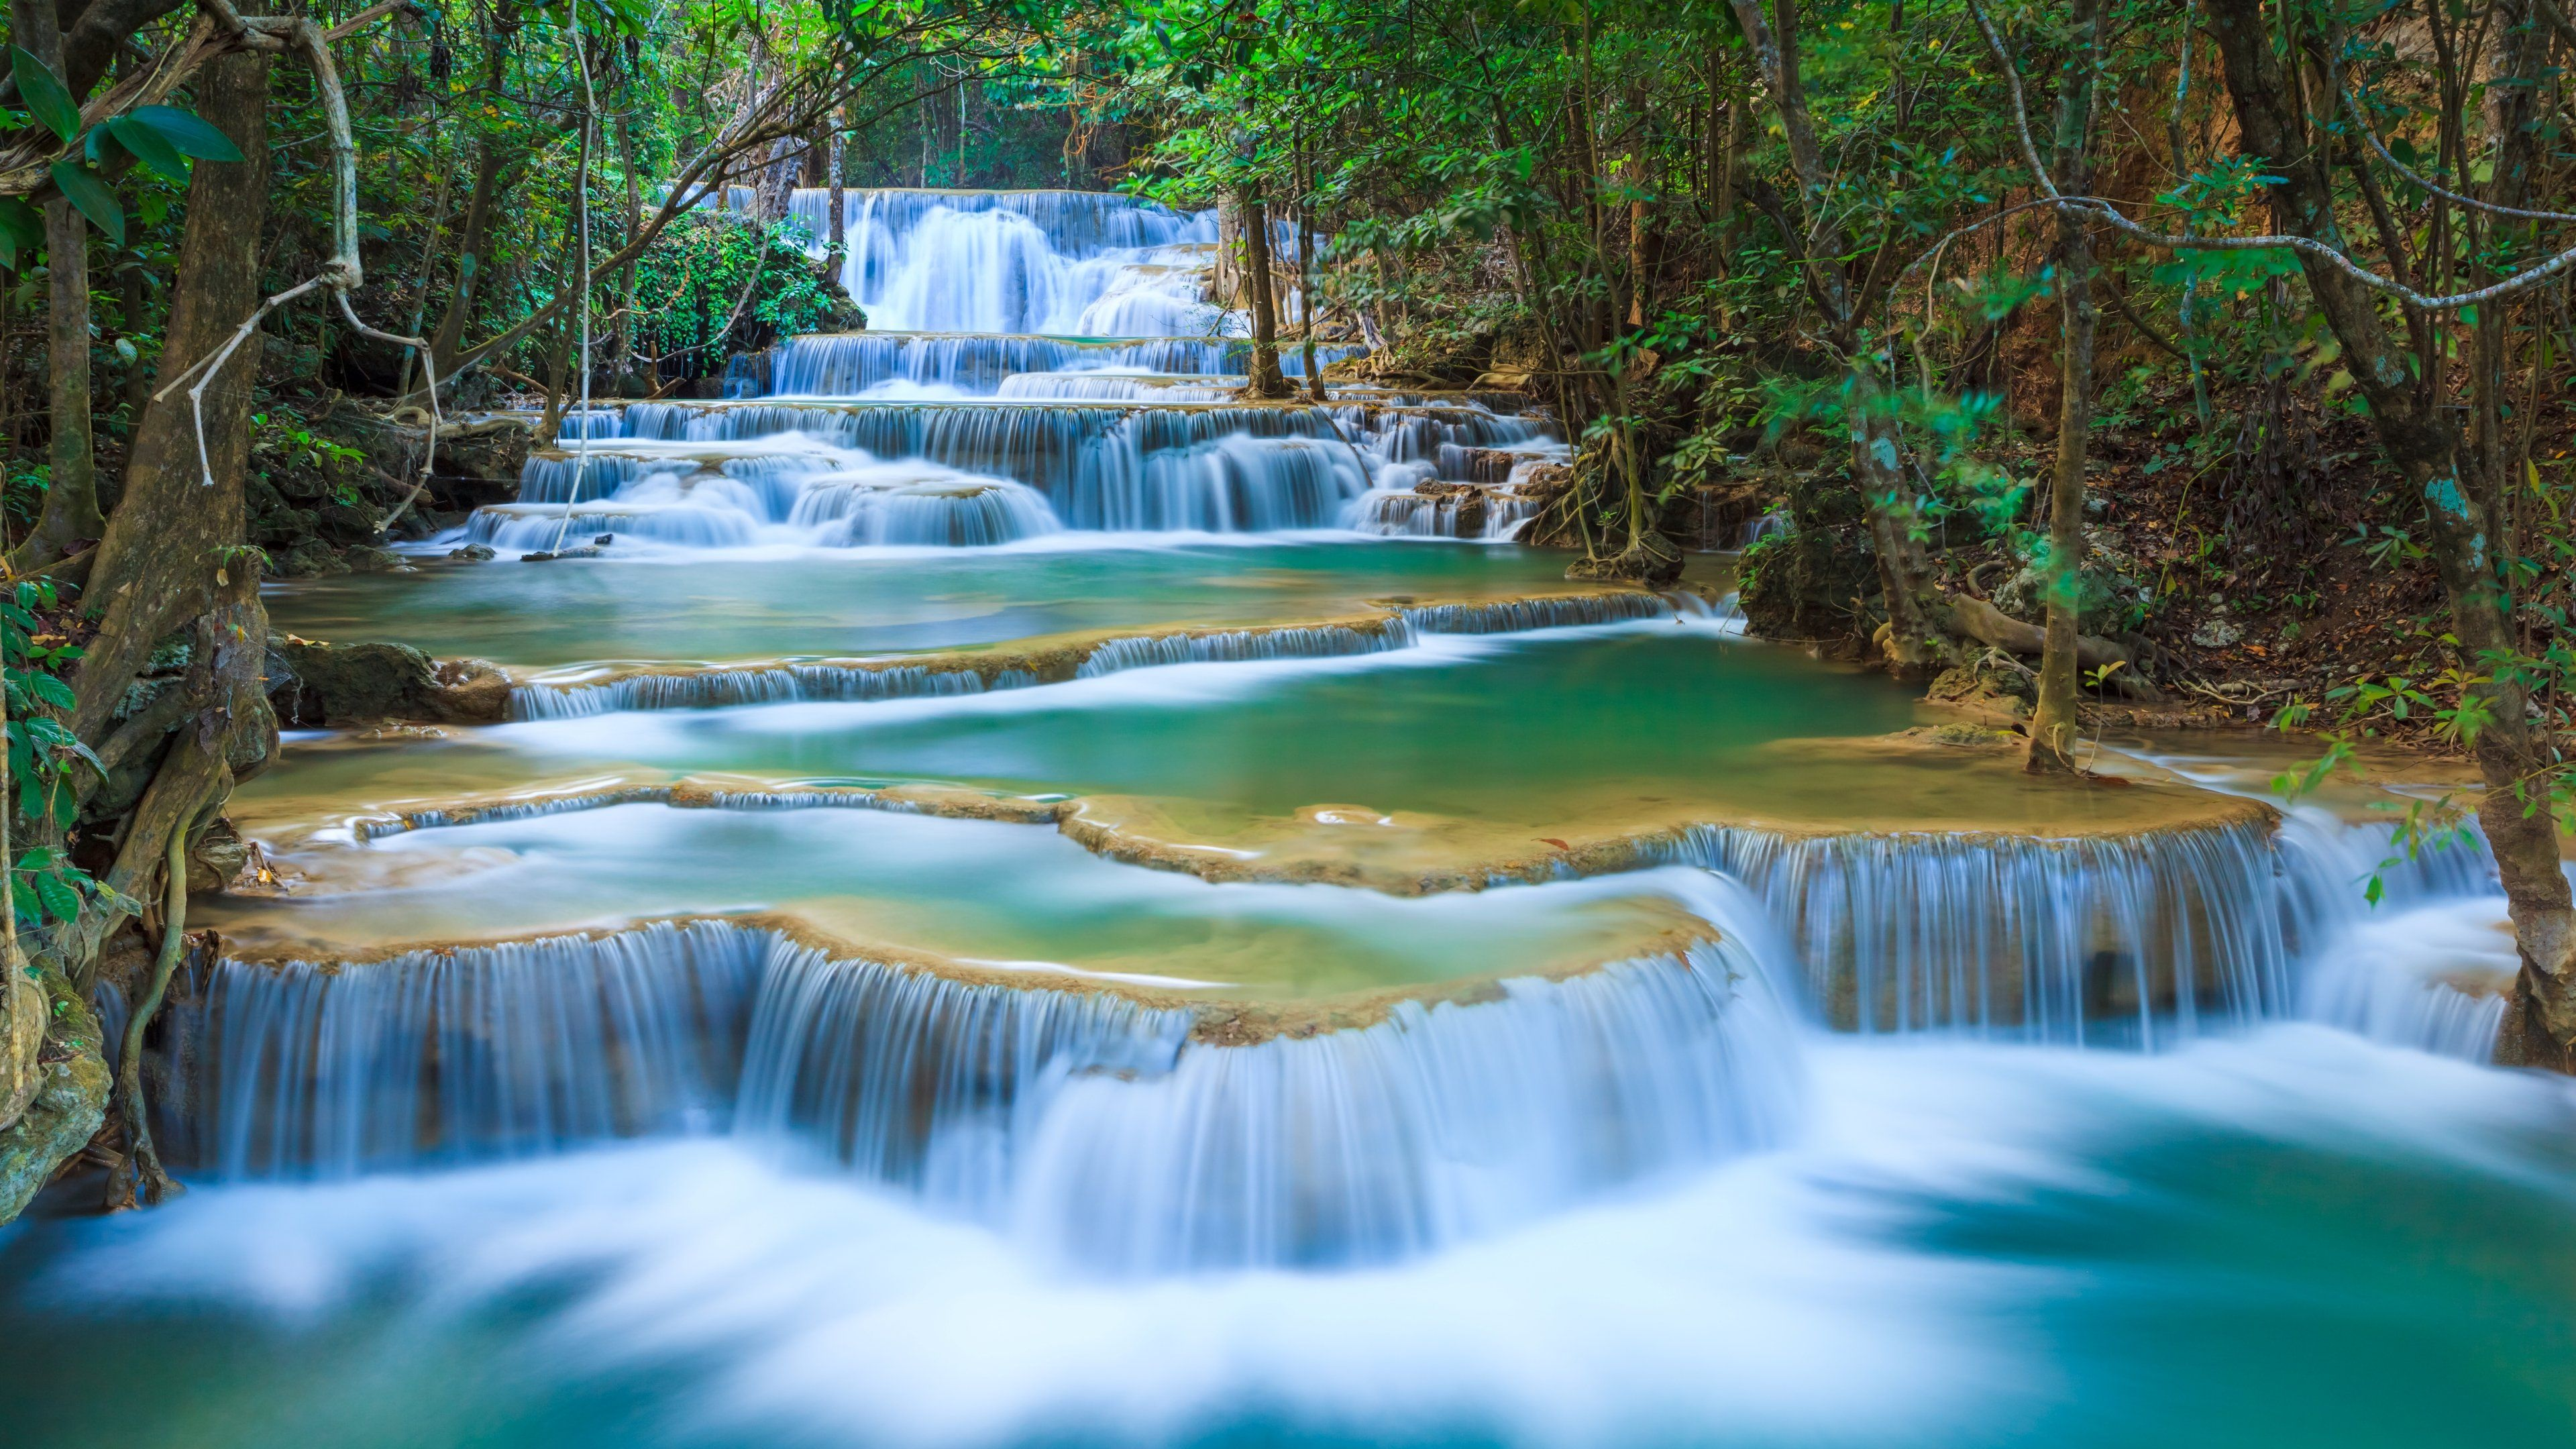 Waterfall Nature Wallpapers Top Free Waterfall Nature Backgrounds Wallpaperaccess